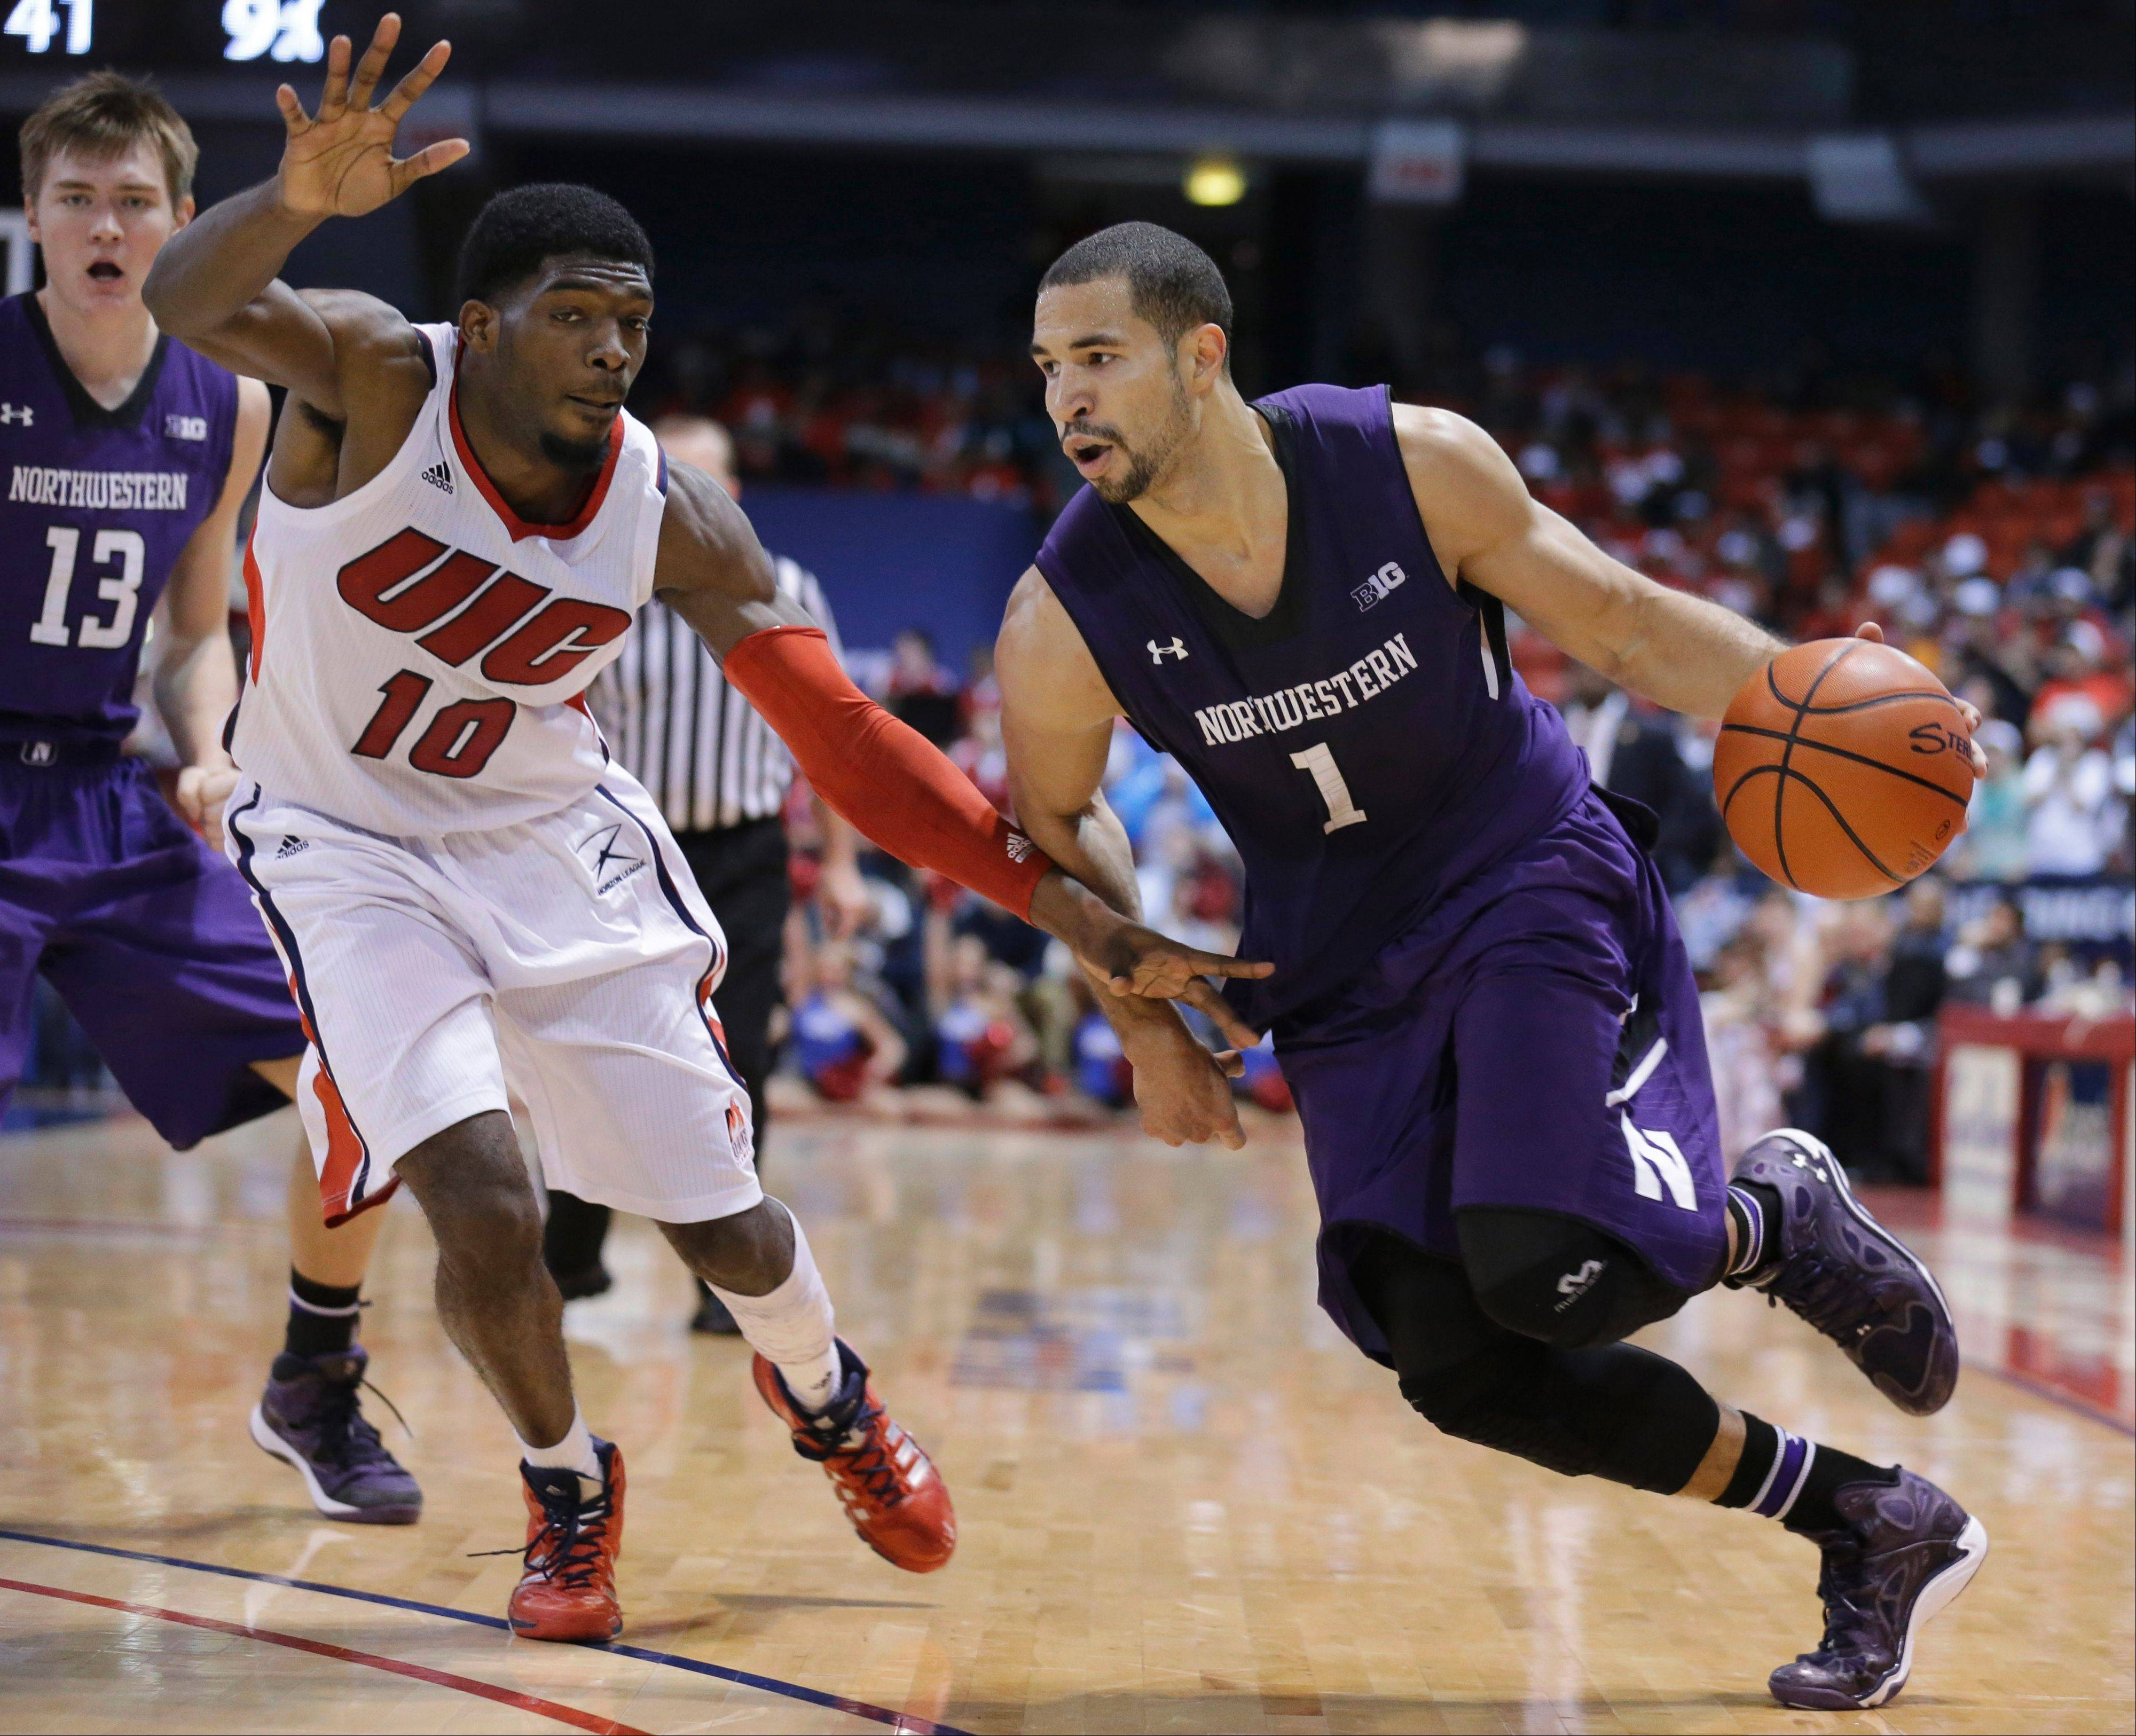 After sitting out most of last season, Northwestern guard/forward Drew Crawford, right, is getting his all-around game back on track. The fifth-year senior from Naperville is leading the Wildcats in scoring.